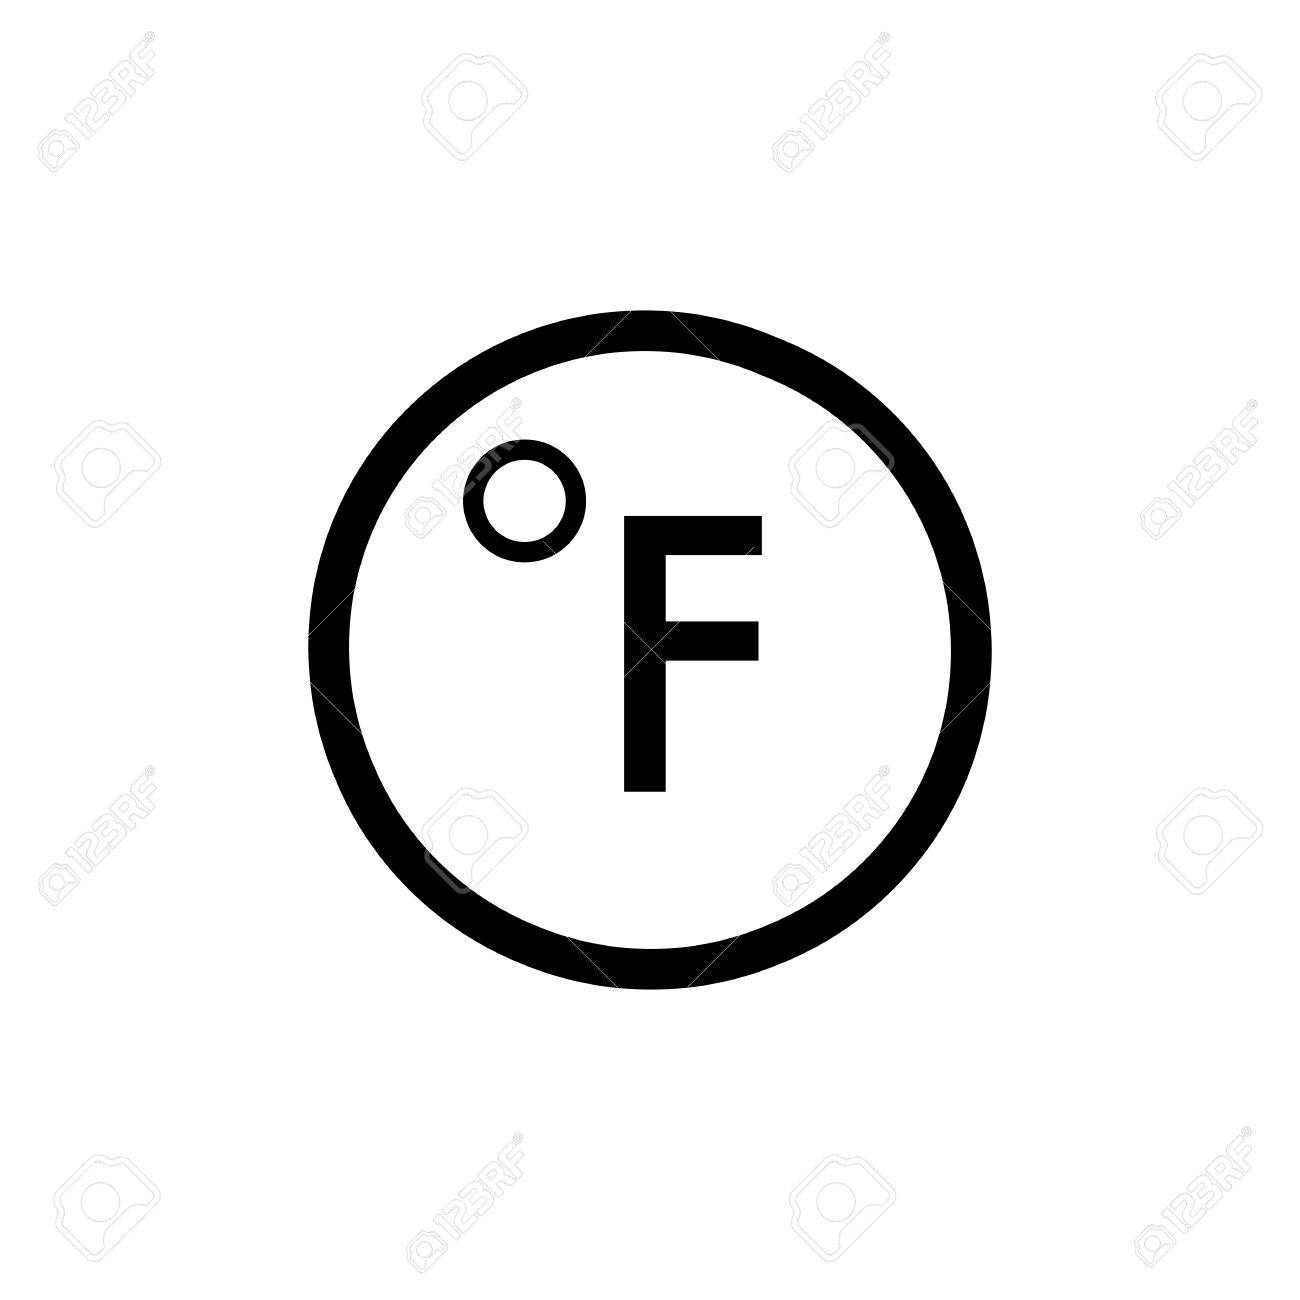 Degrees Fahrenheit Vector Icon Royalty Free Cliparts Vectors And